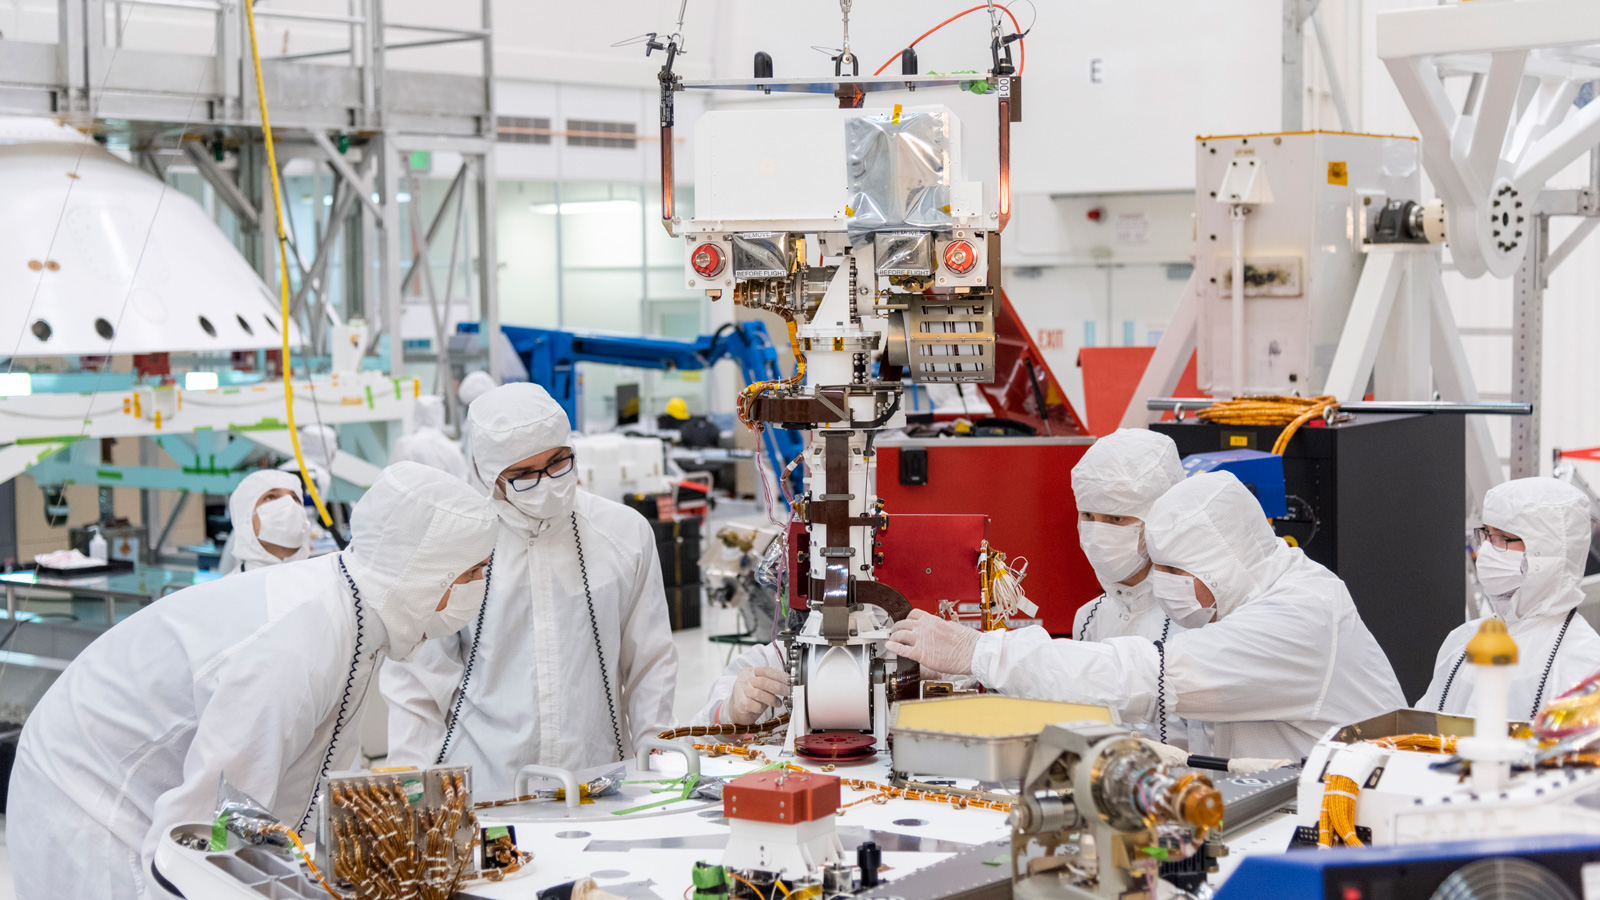 Engineers and technicians at NASA's Jet Propulsion Laboratory in Pasadena, California, install the remote sensing mast on the Mars 2020 rover.